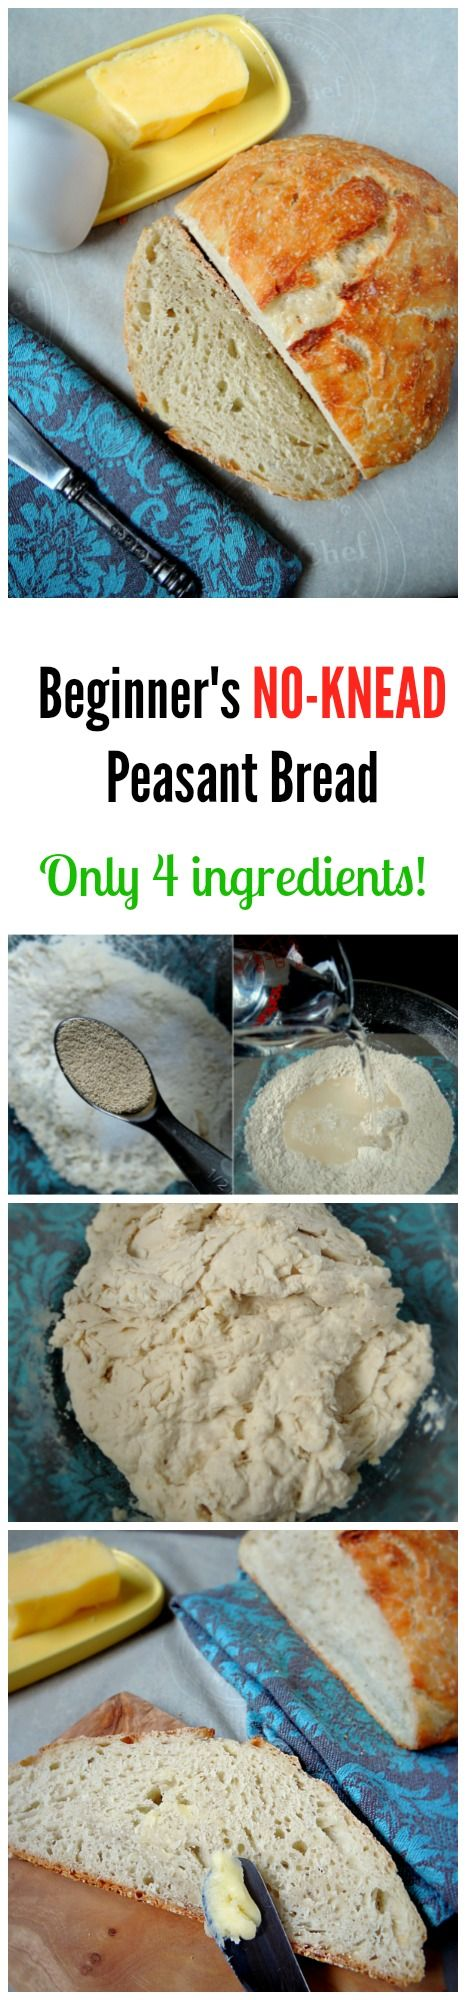 The easiest bread recipe EVER! With only 4 ingredients you can make a hearty crusty peasant loaf!